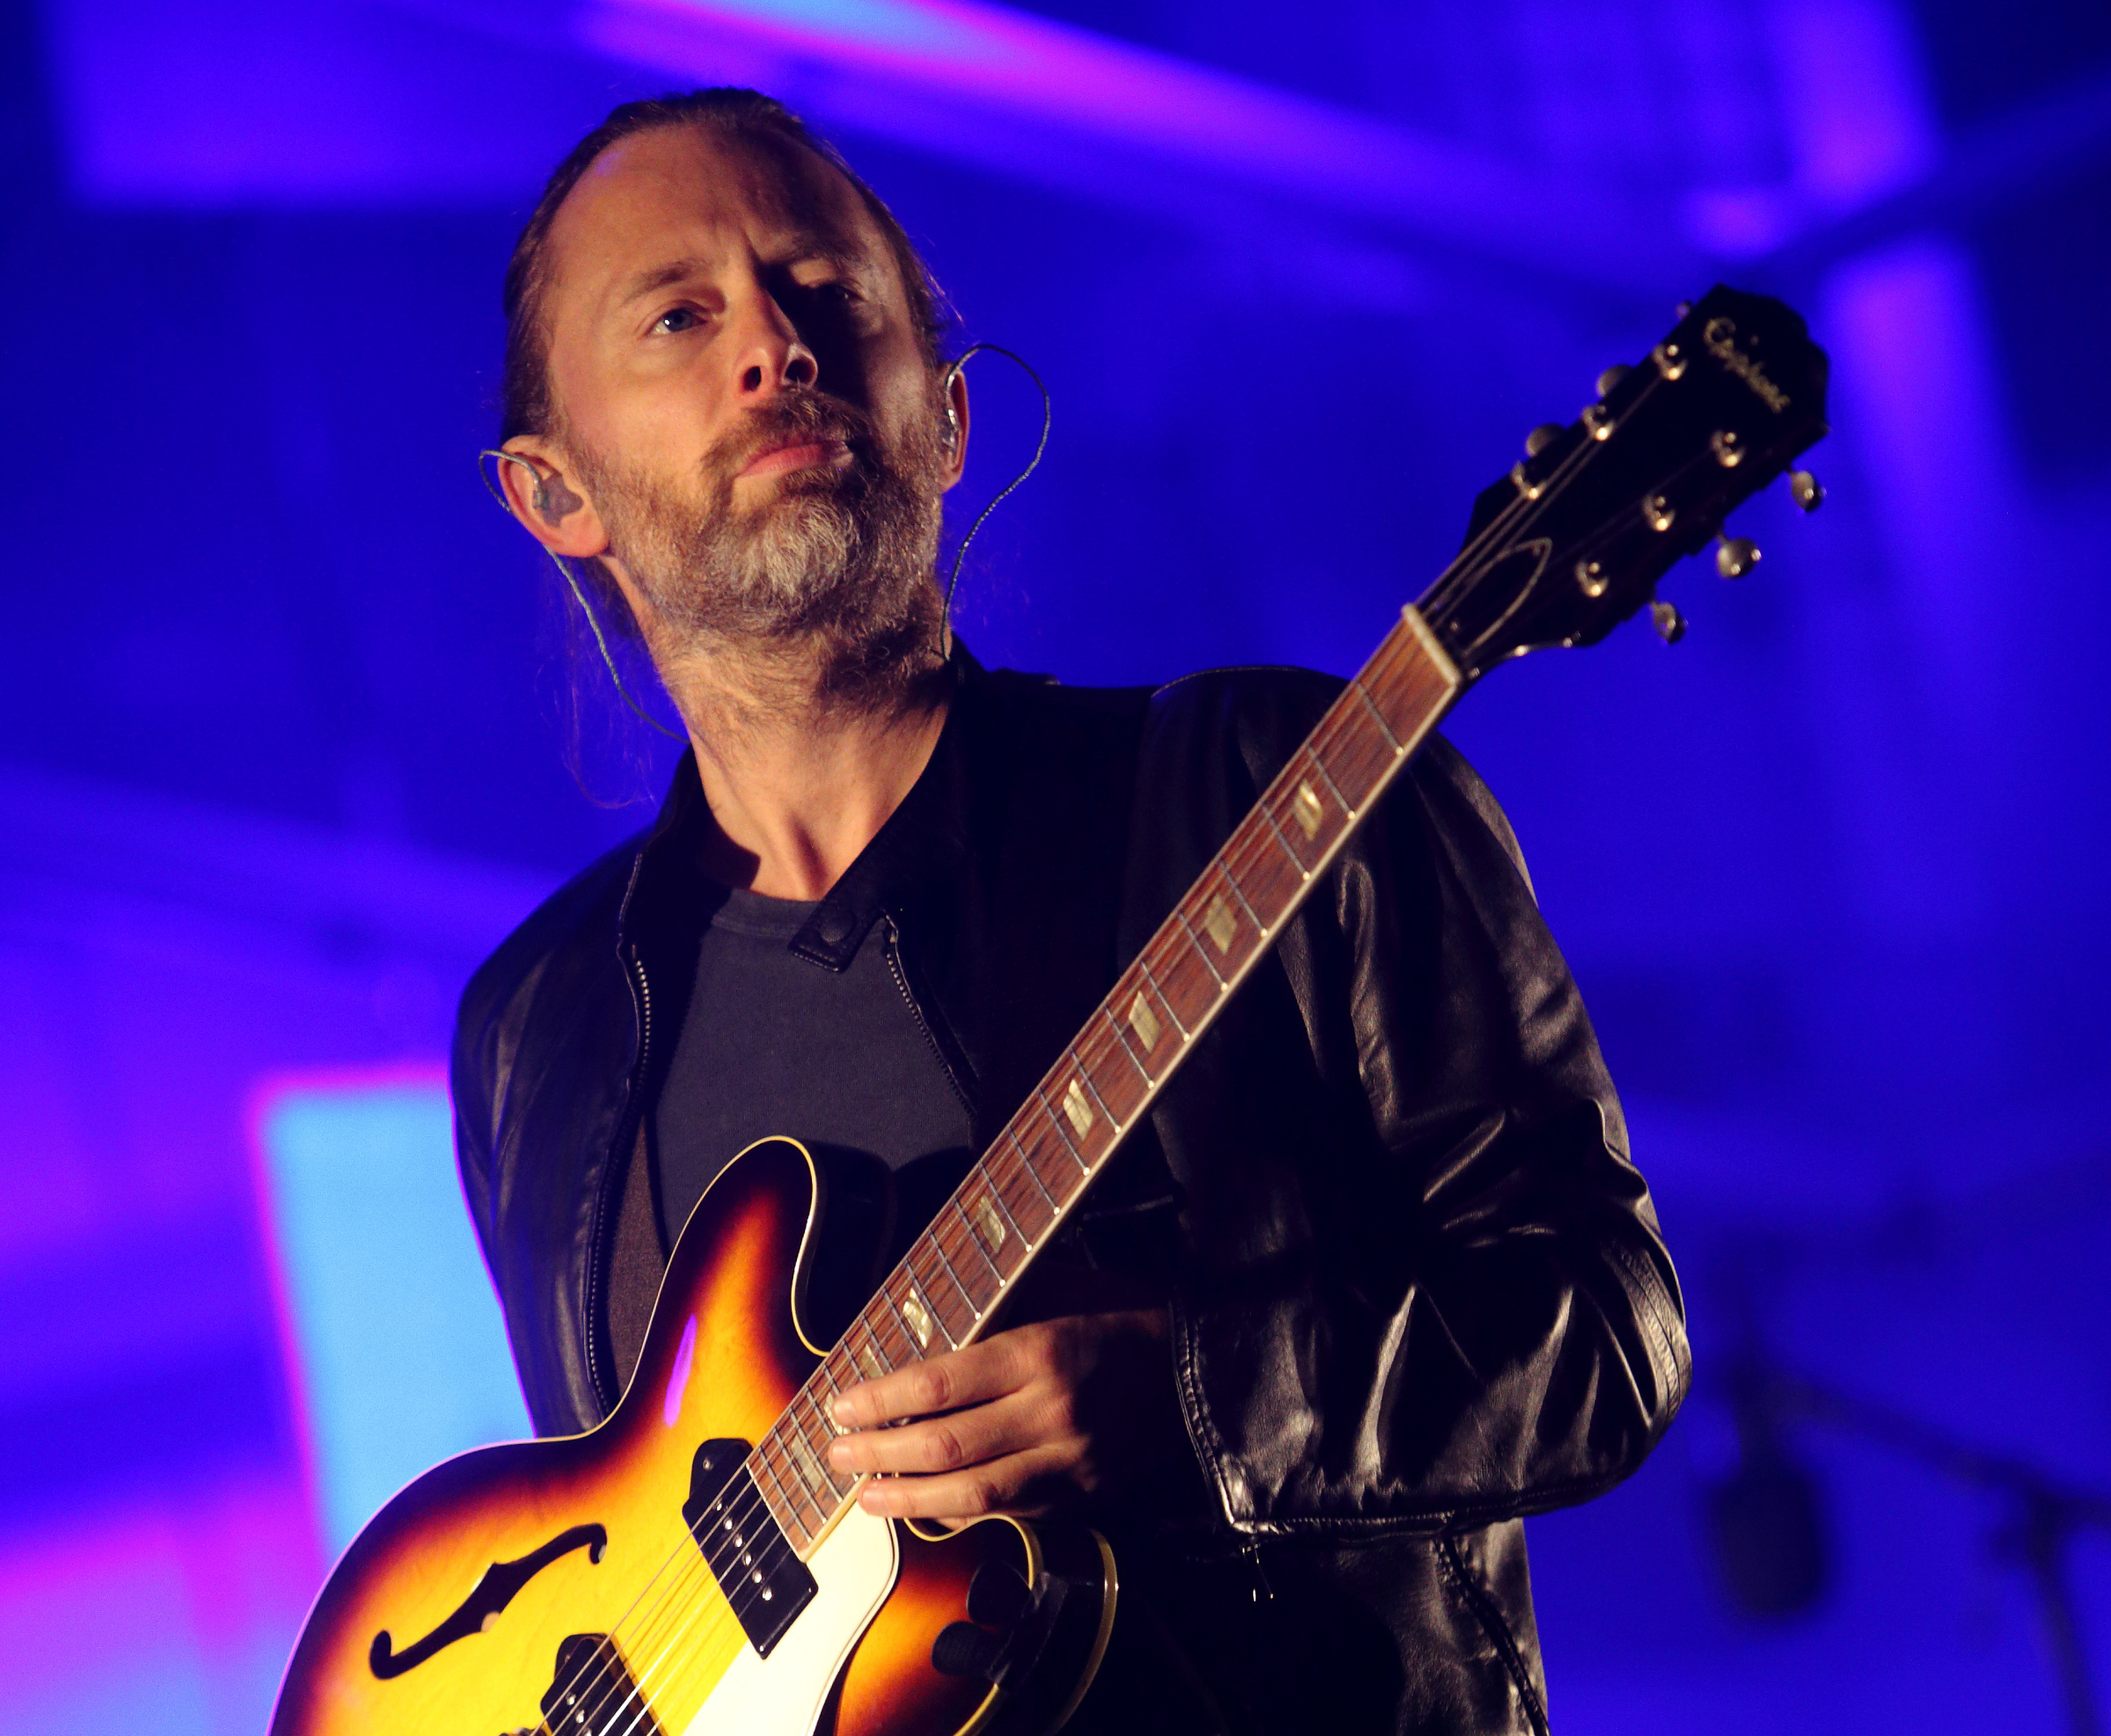 Thom Yorke performs at the 2013 Austin City Limits Music Festival in Austin on Oct. 6, 2013.